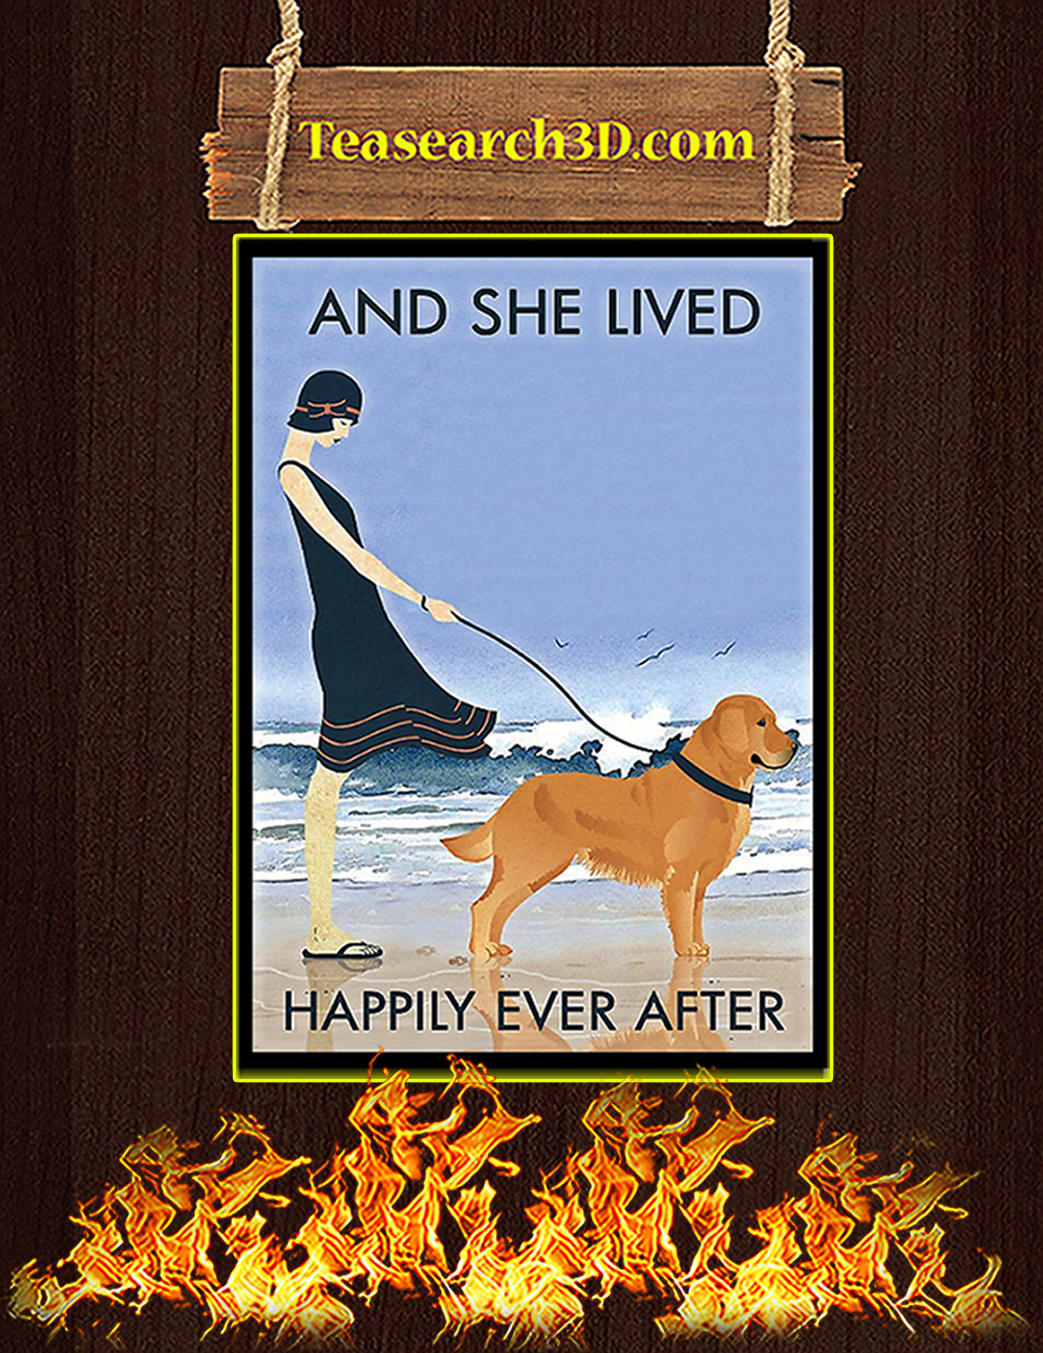 Golden Retriever And she lived happily ever after poster A1